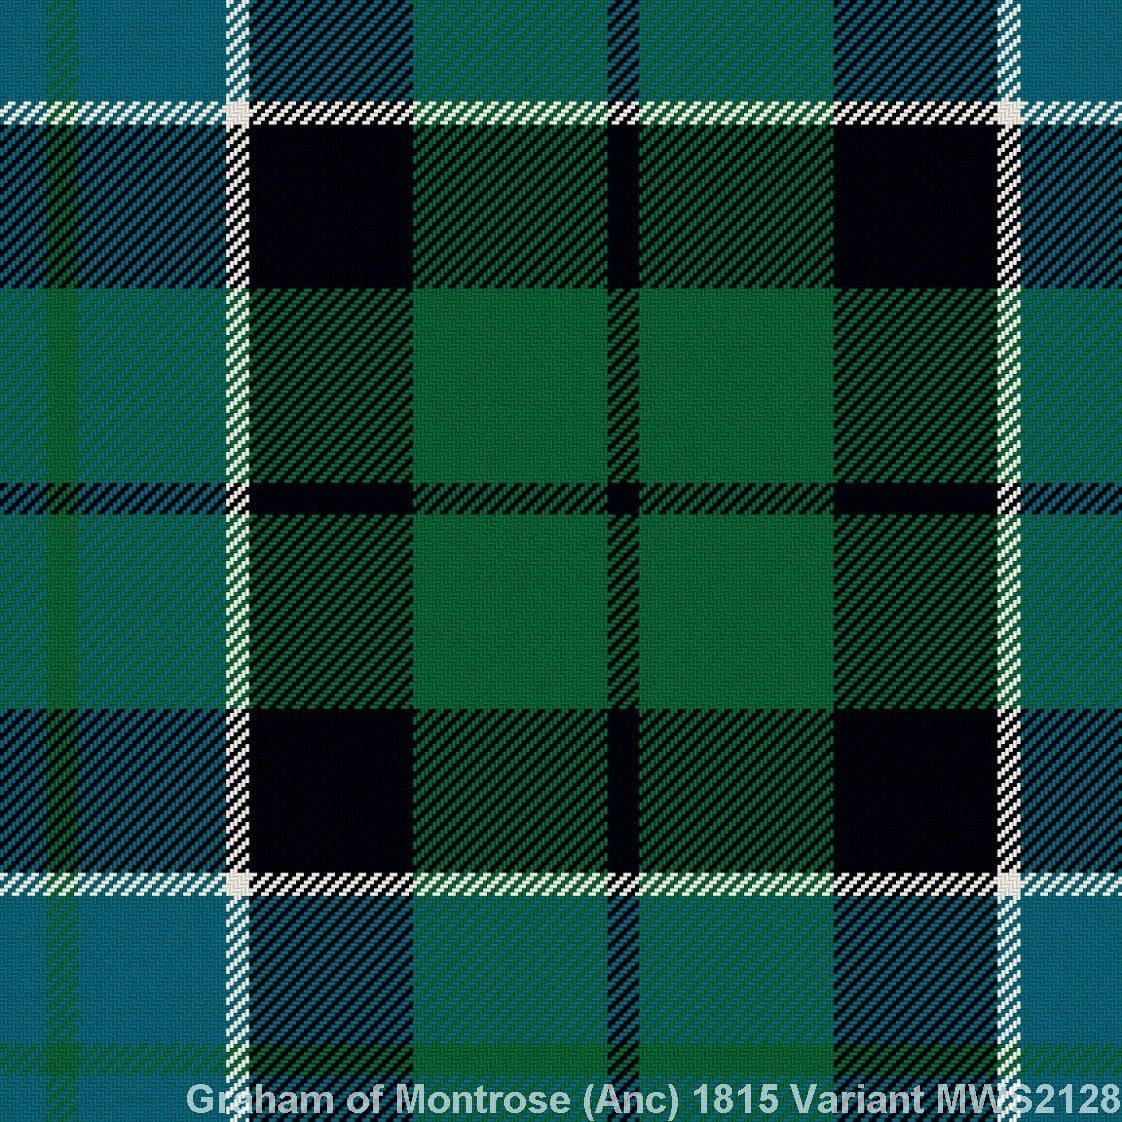 Graham of Montrose Ancient 1815 Variant